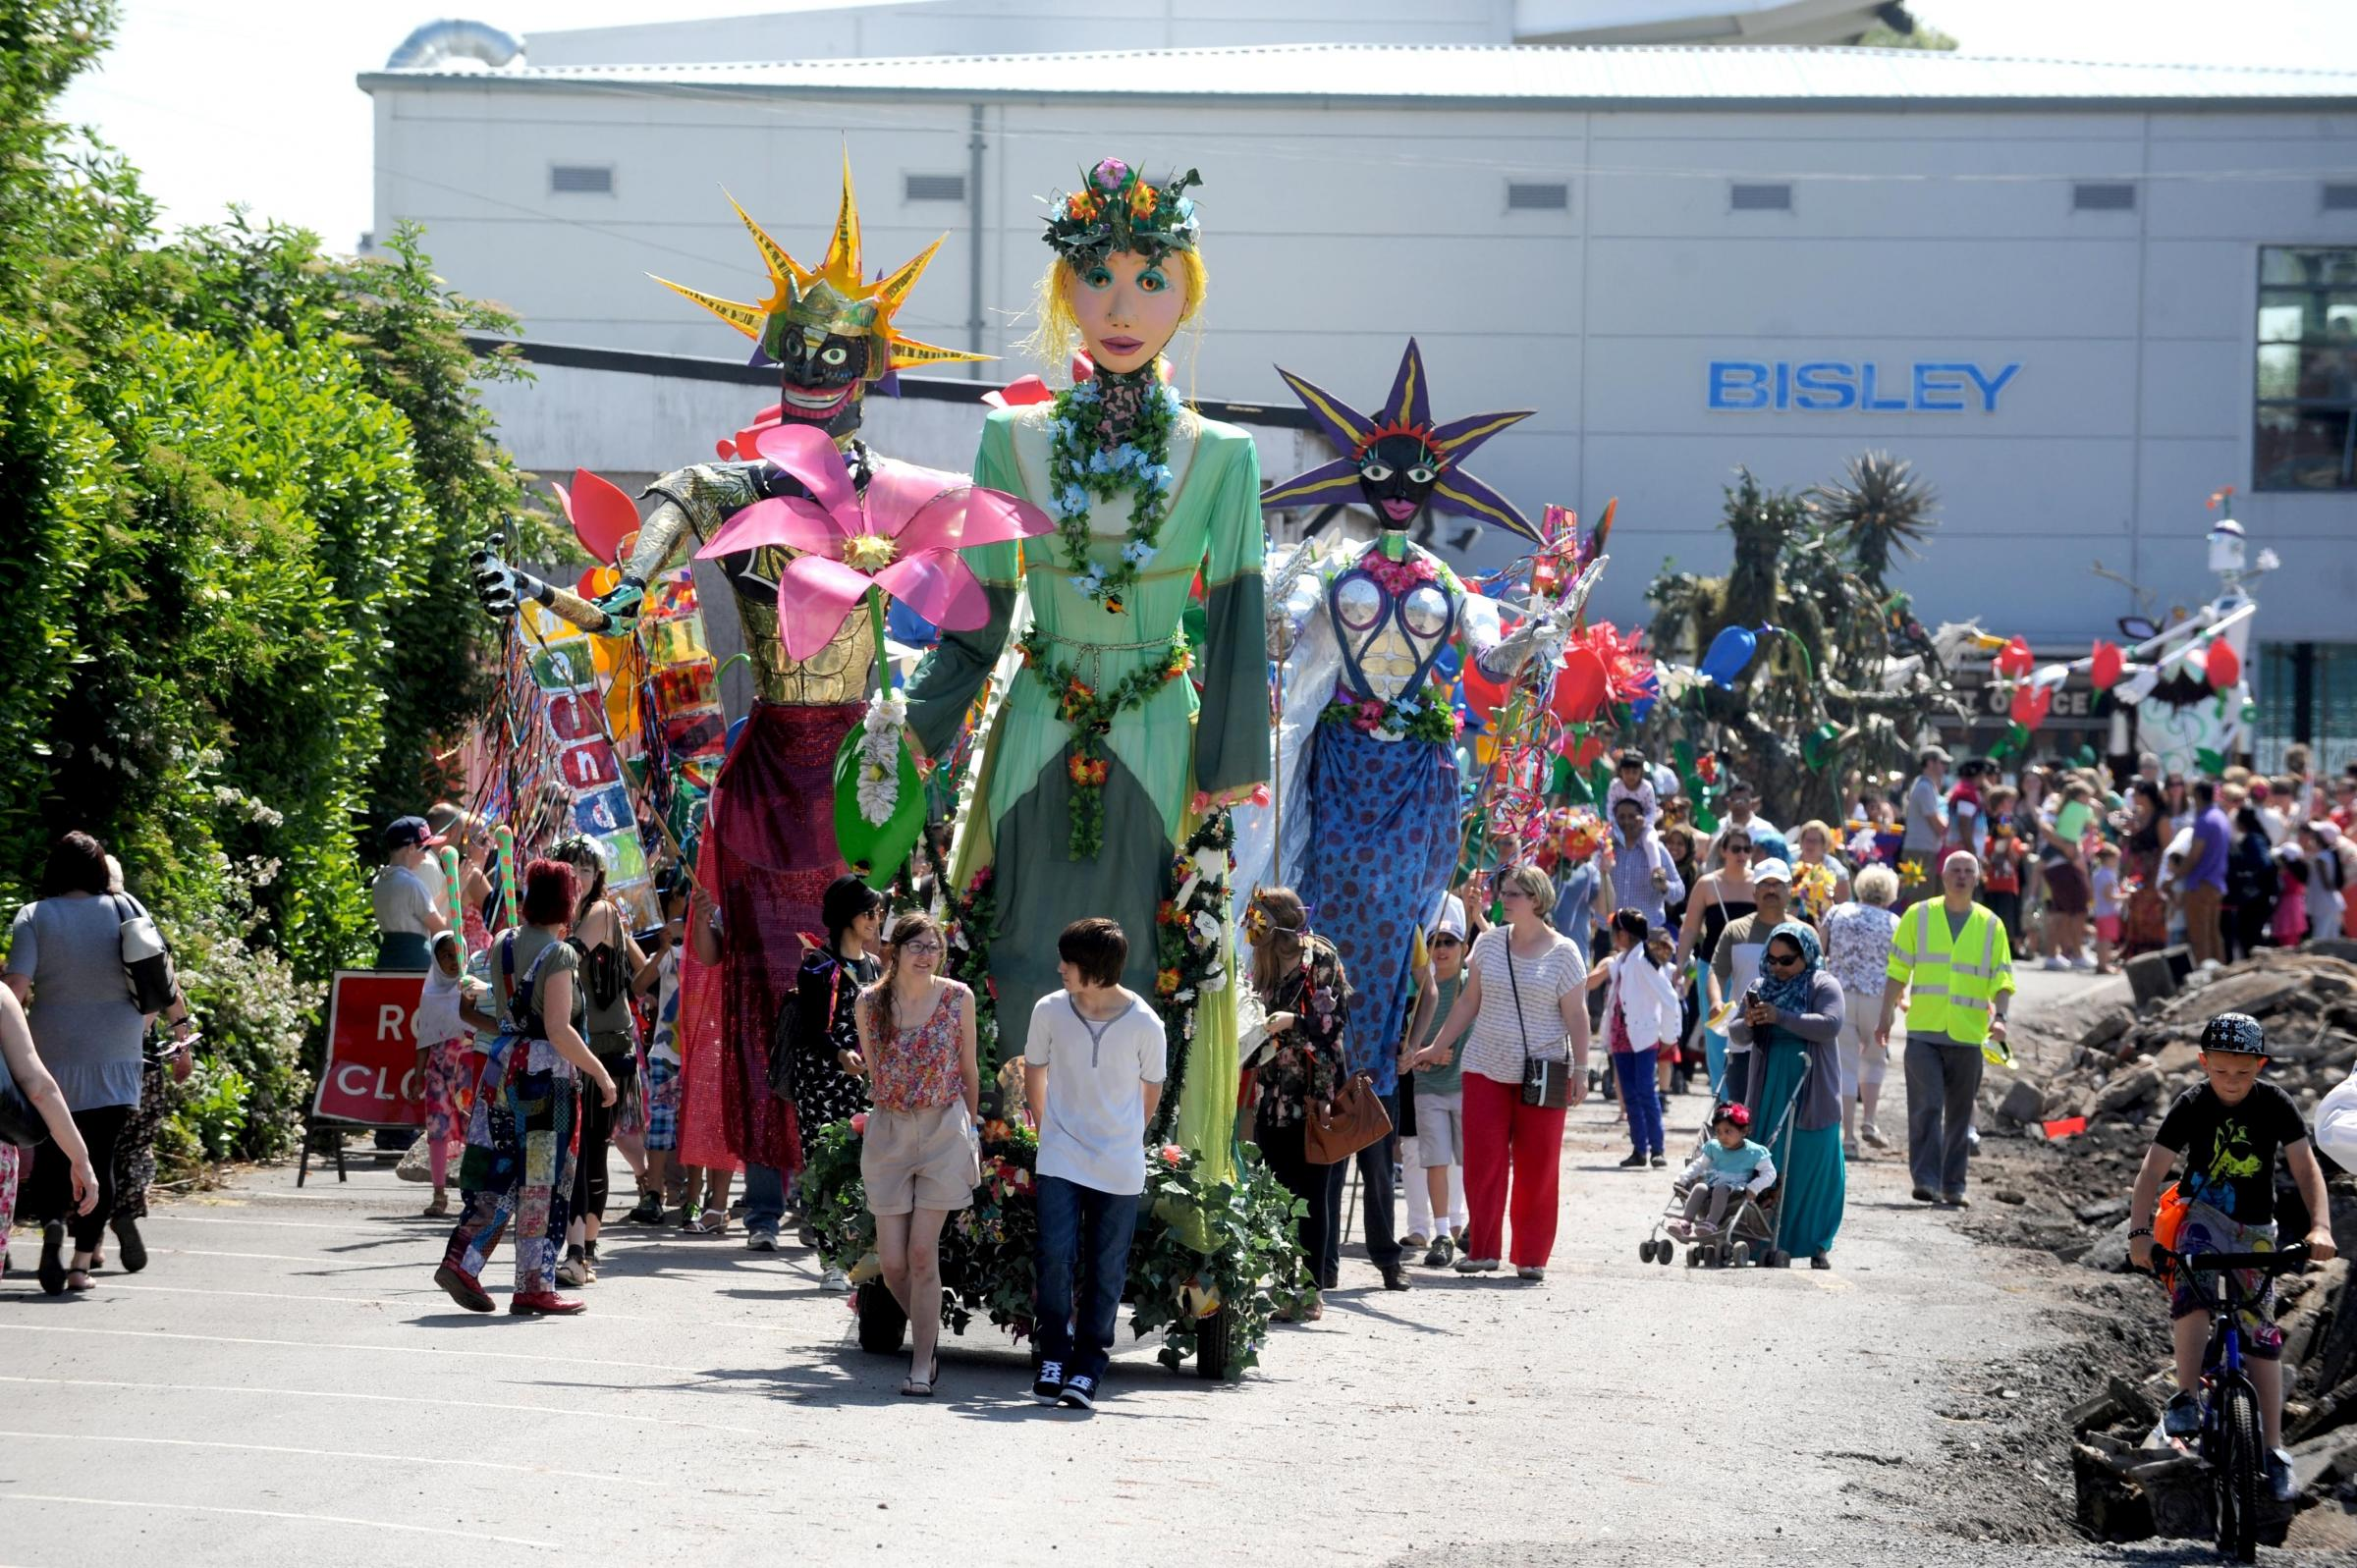 MAINDEE CARNIVAL SETS OFF FROM RODNEY PARADE (6